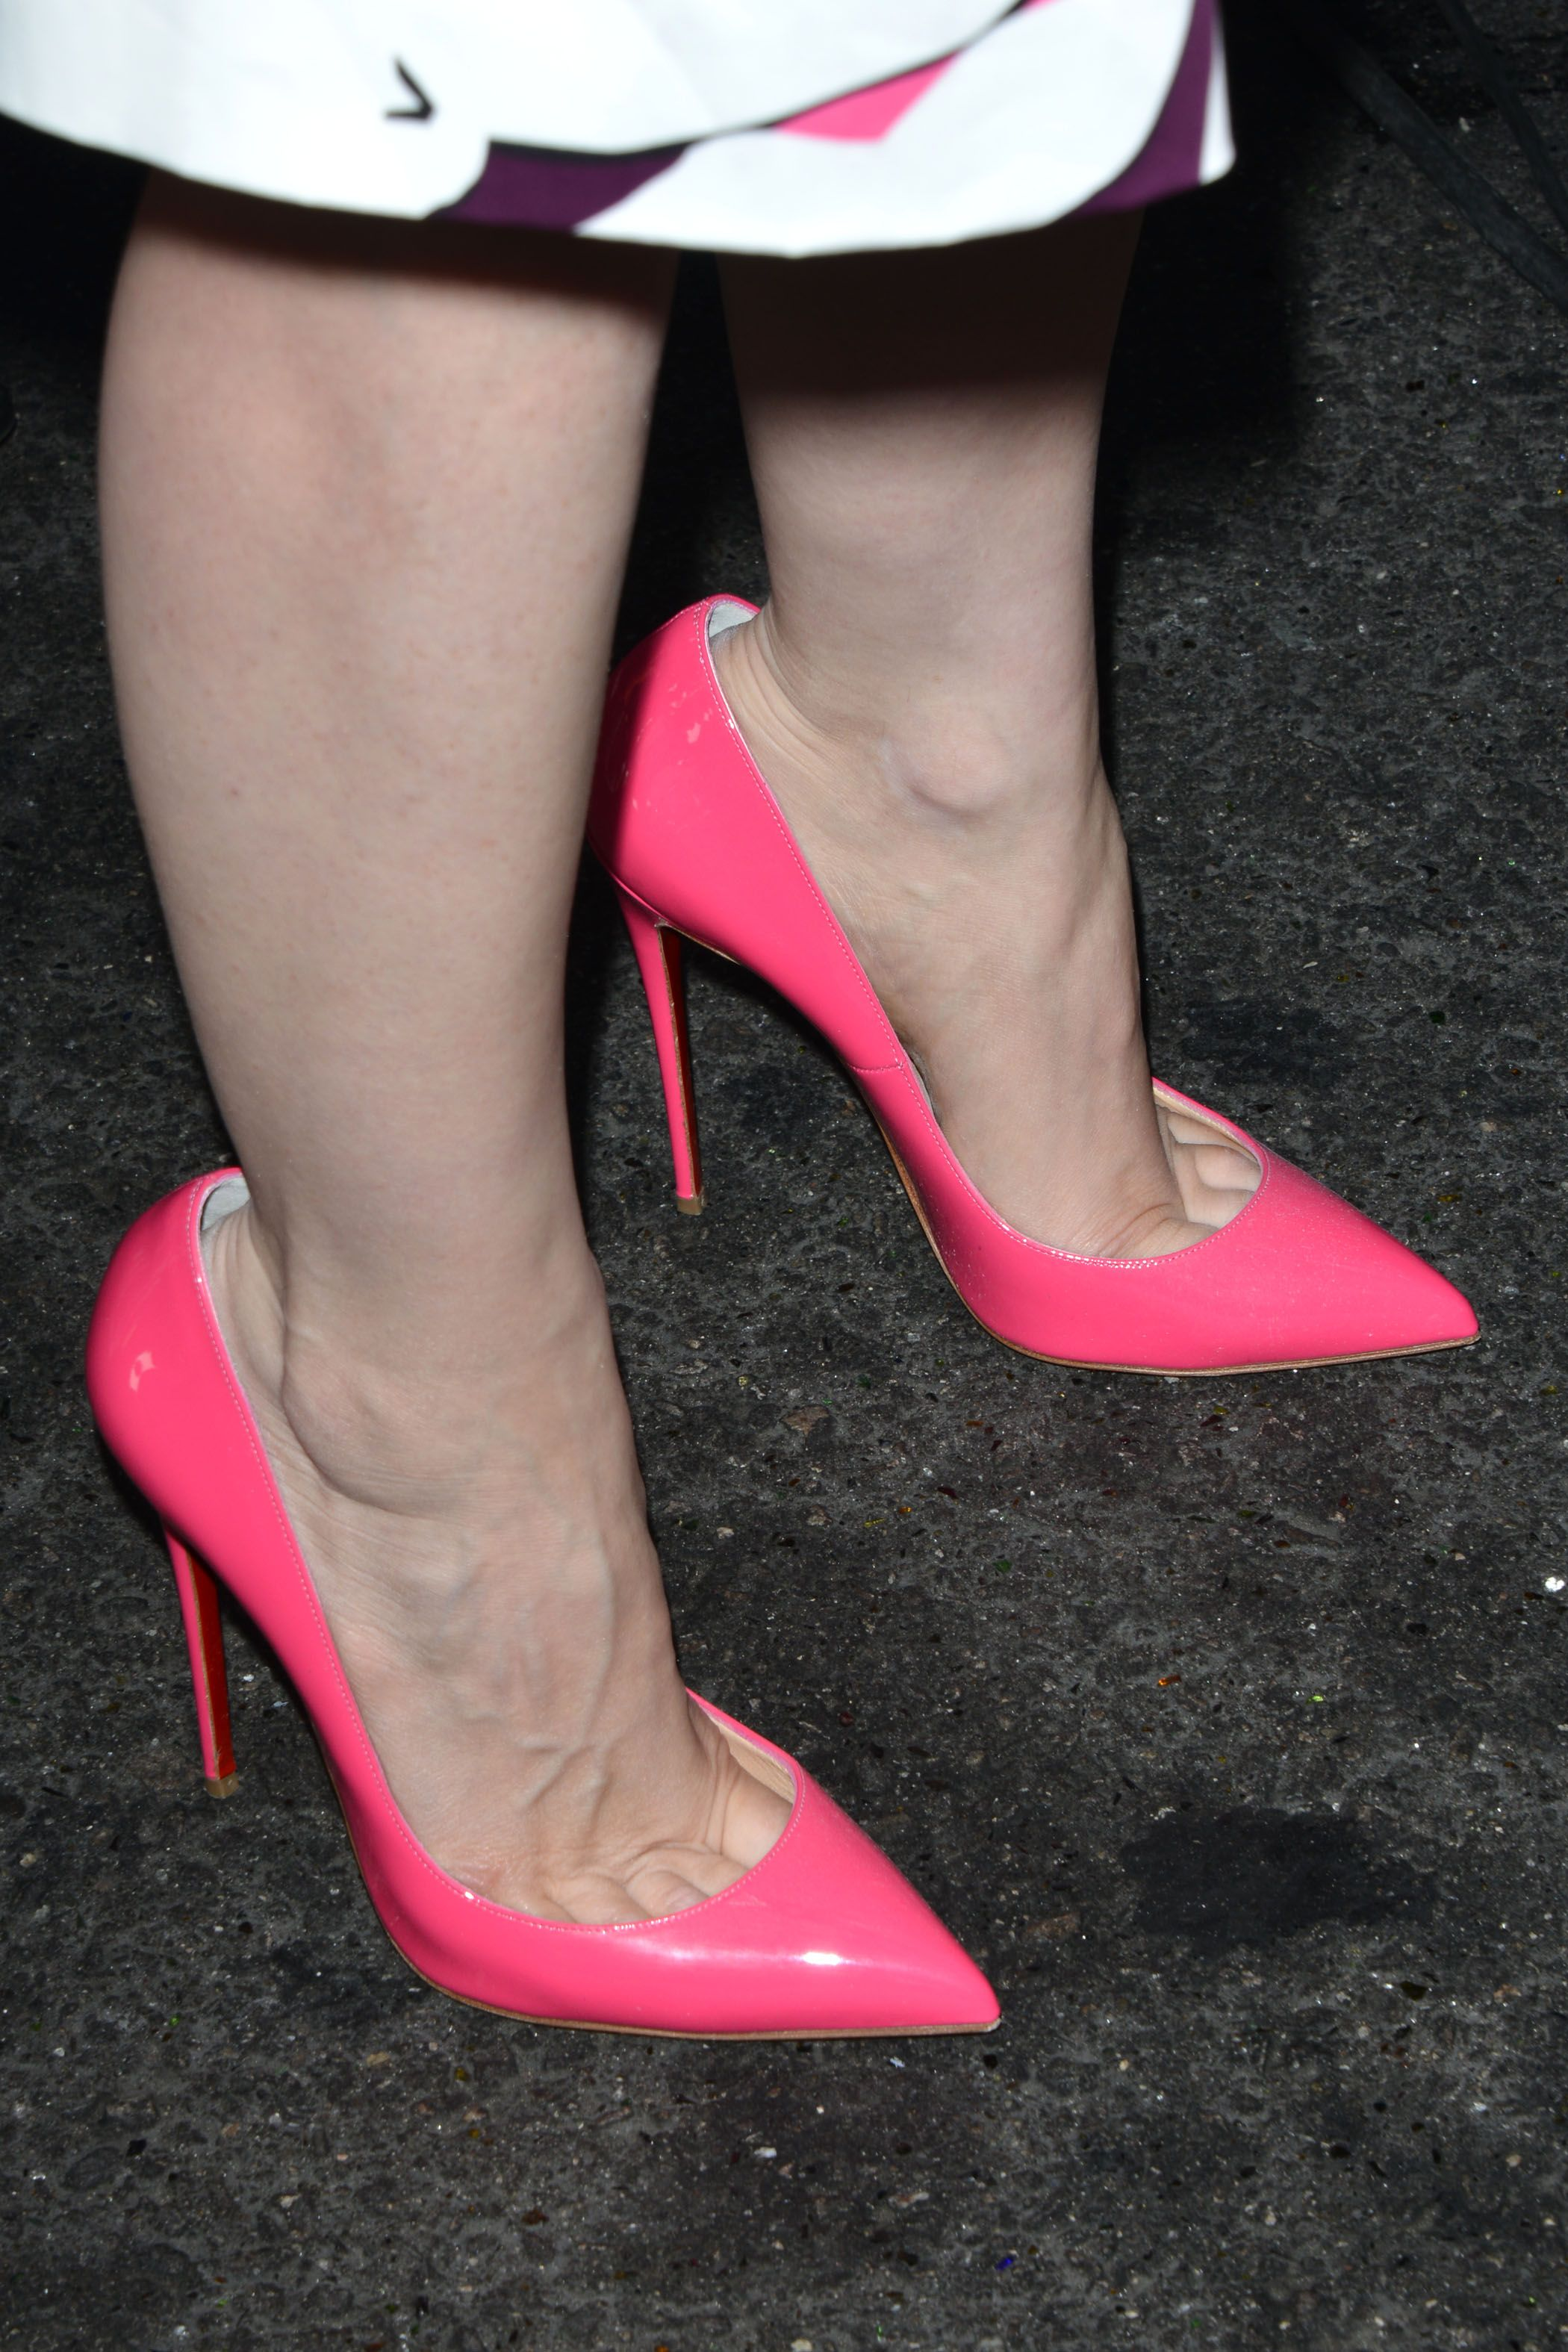 jessica chastain 39 s hot pink christian louboutin 39 so kate 120 39 pumps in hollywood shoeporn. Black Bedroom Furniture Sets. Home Design Ideas